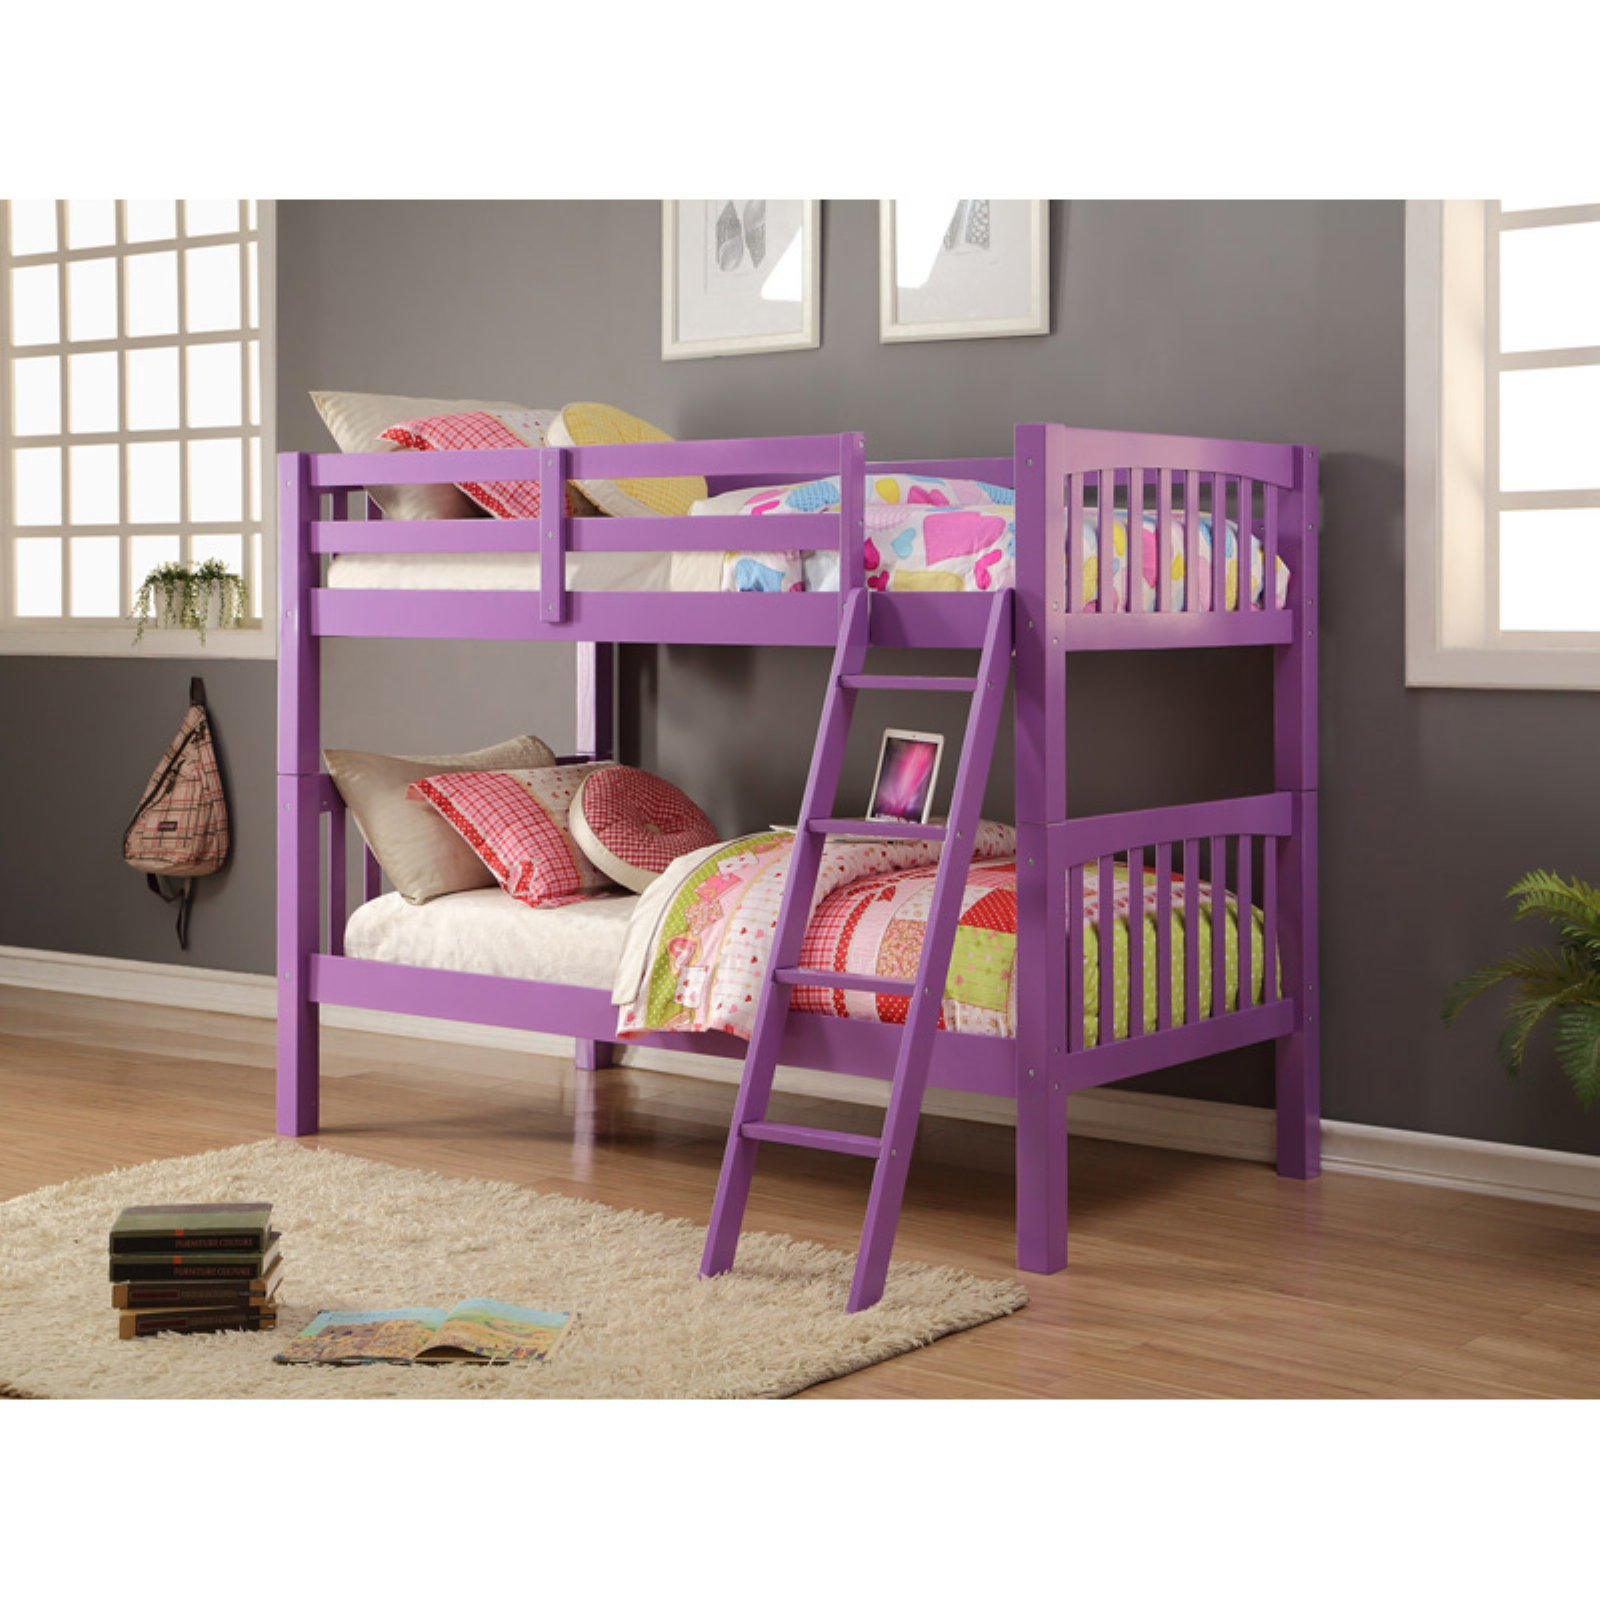 Donco Grapevine Twin over Twin Bunk Bed - Grape